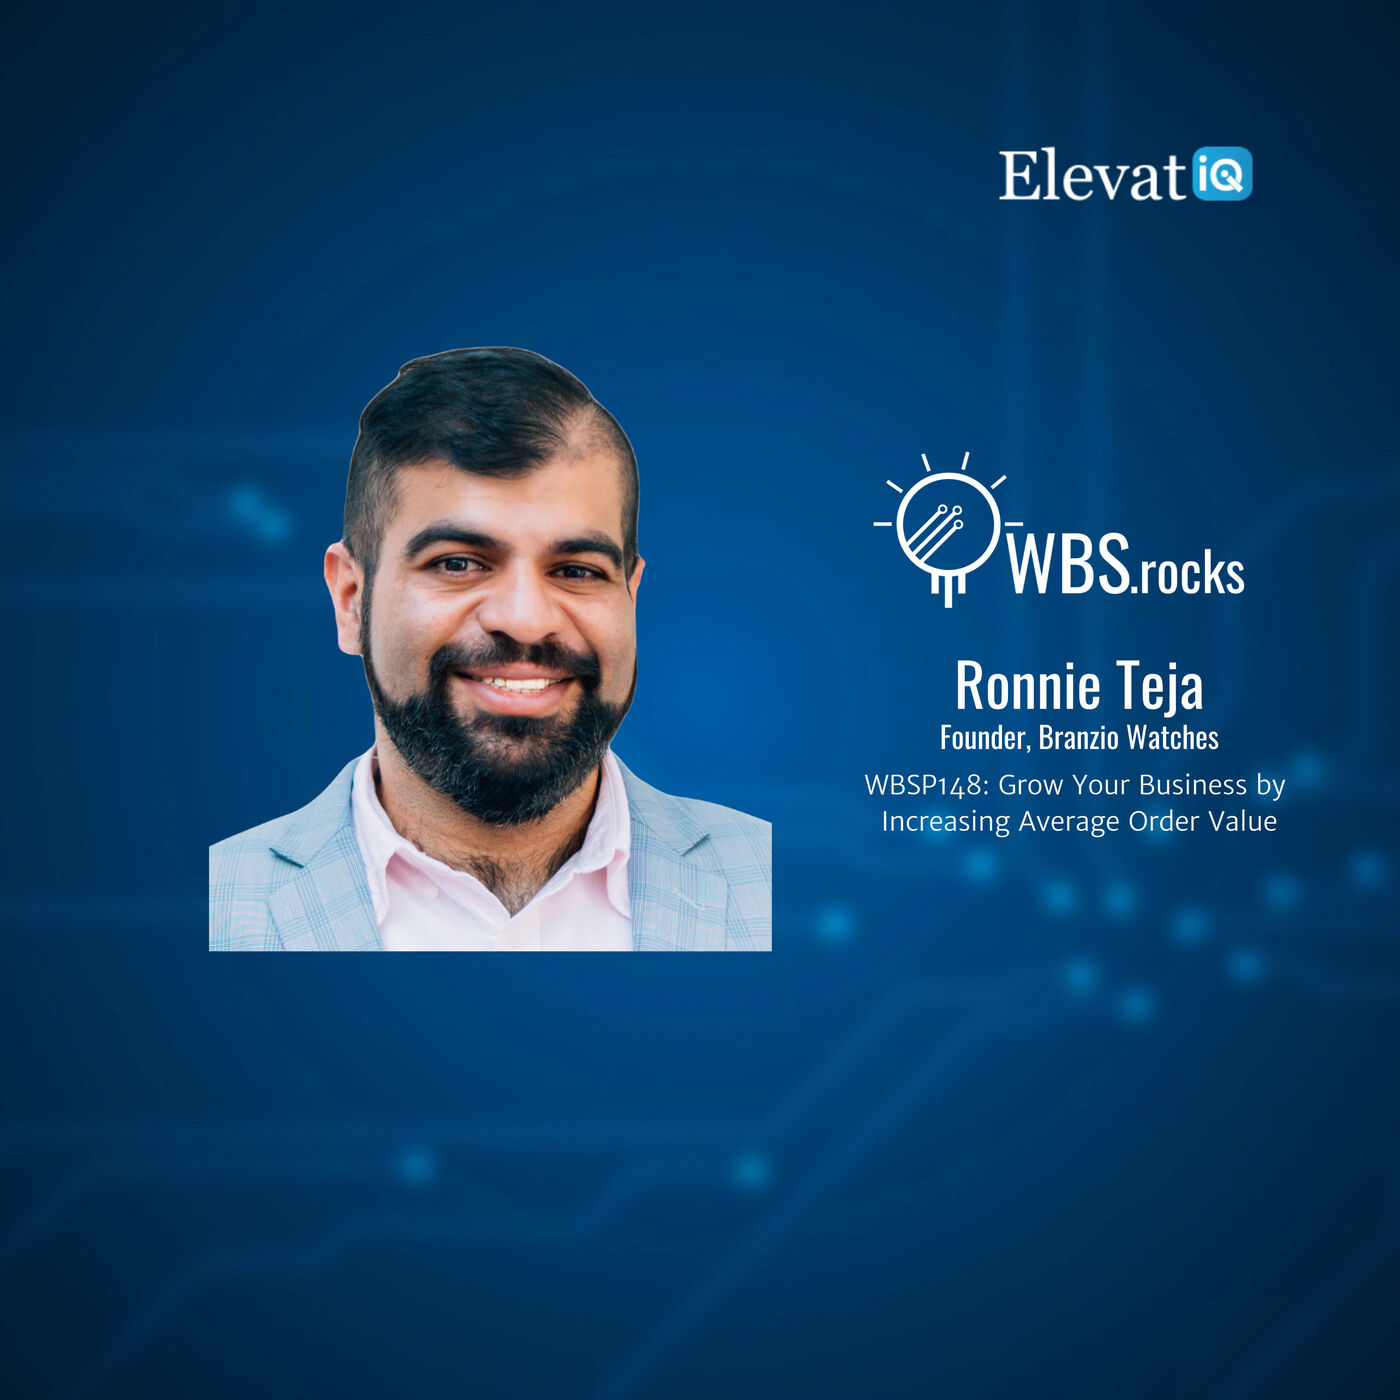 WBSP148: Grow Your Business by Increasing Average Order Value w/ Ronnie Teja